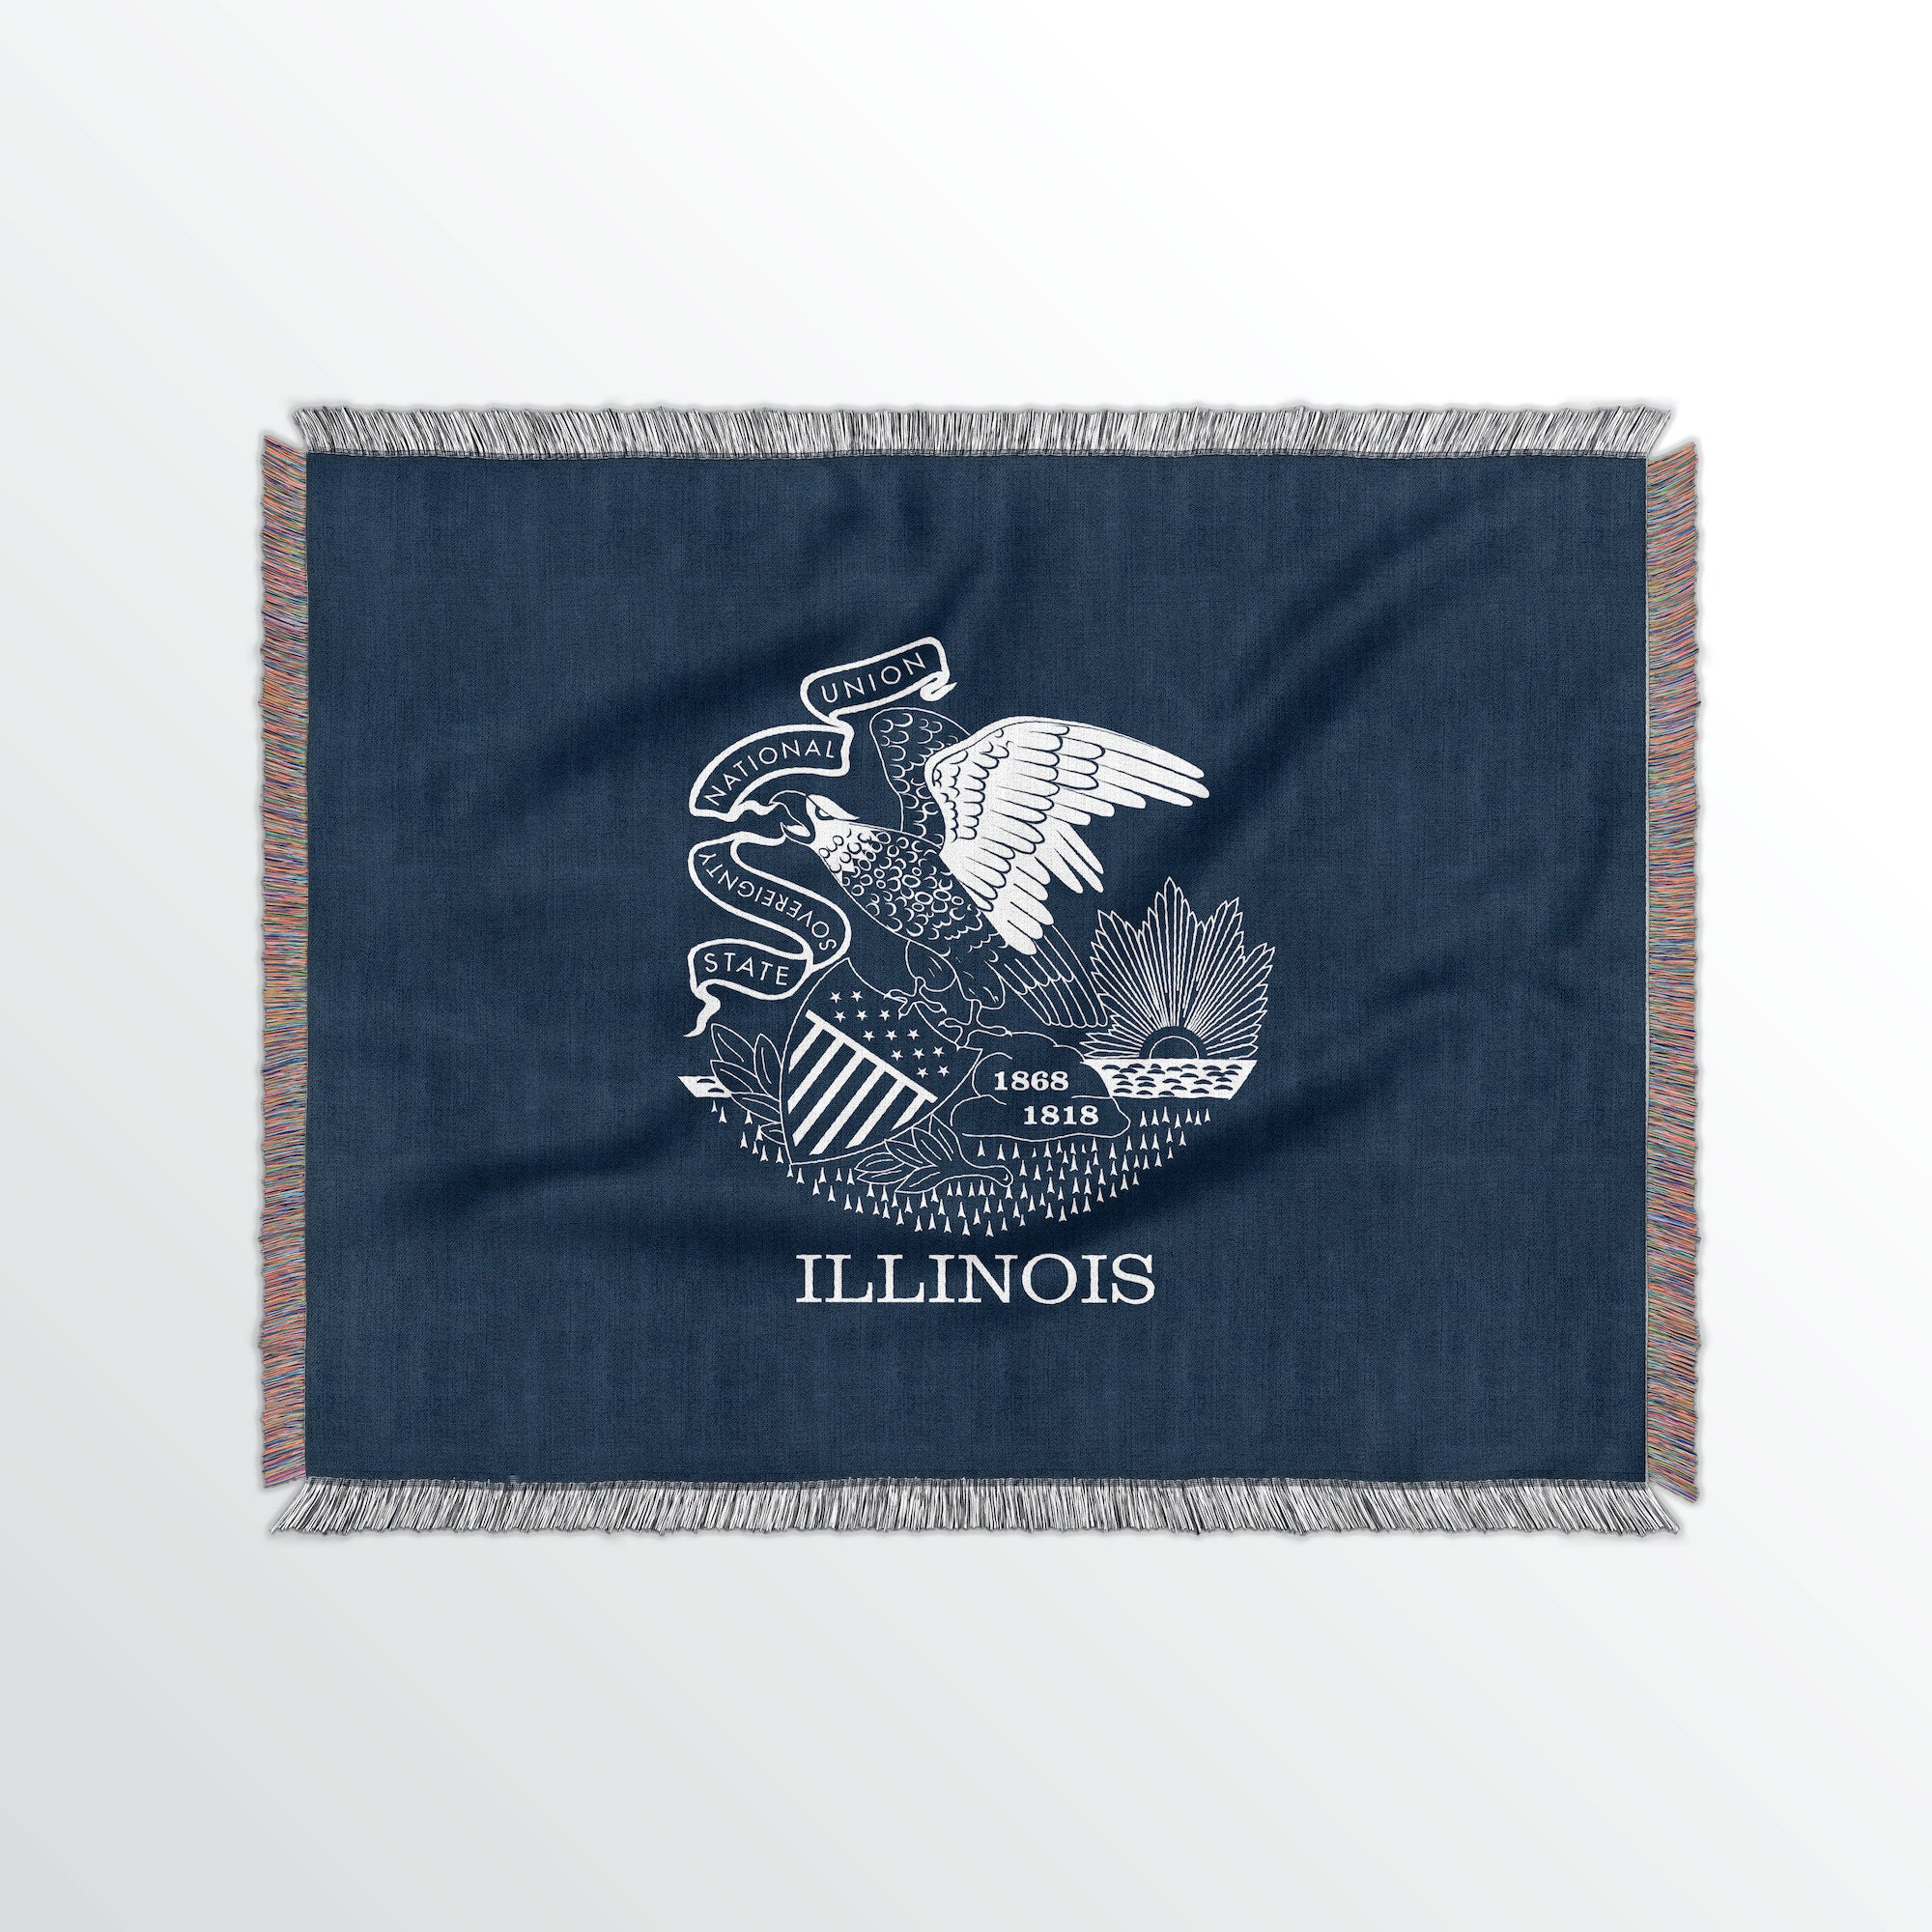 Illinois State Woven Cotton Blanet - Point Two Design